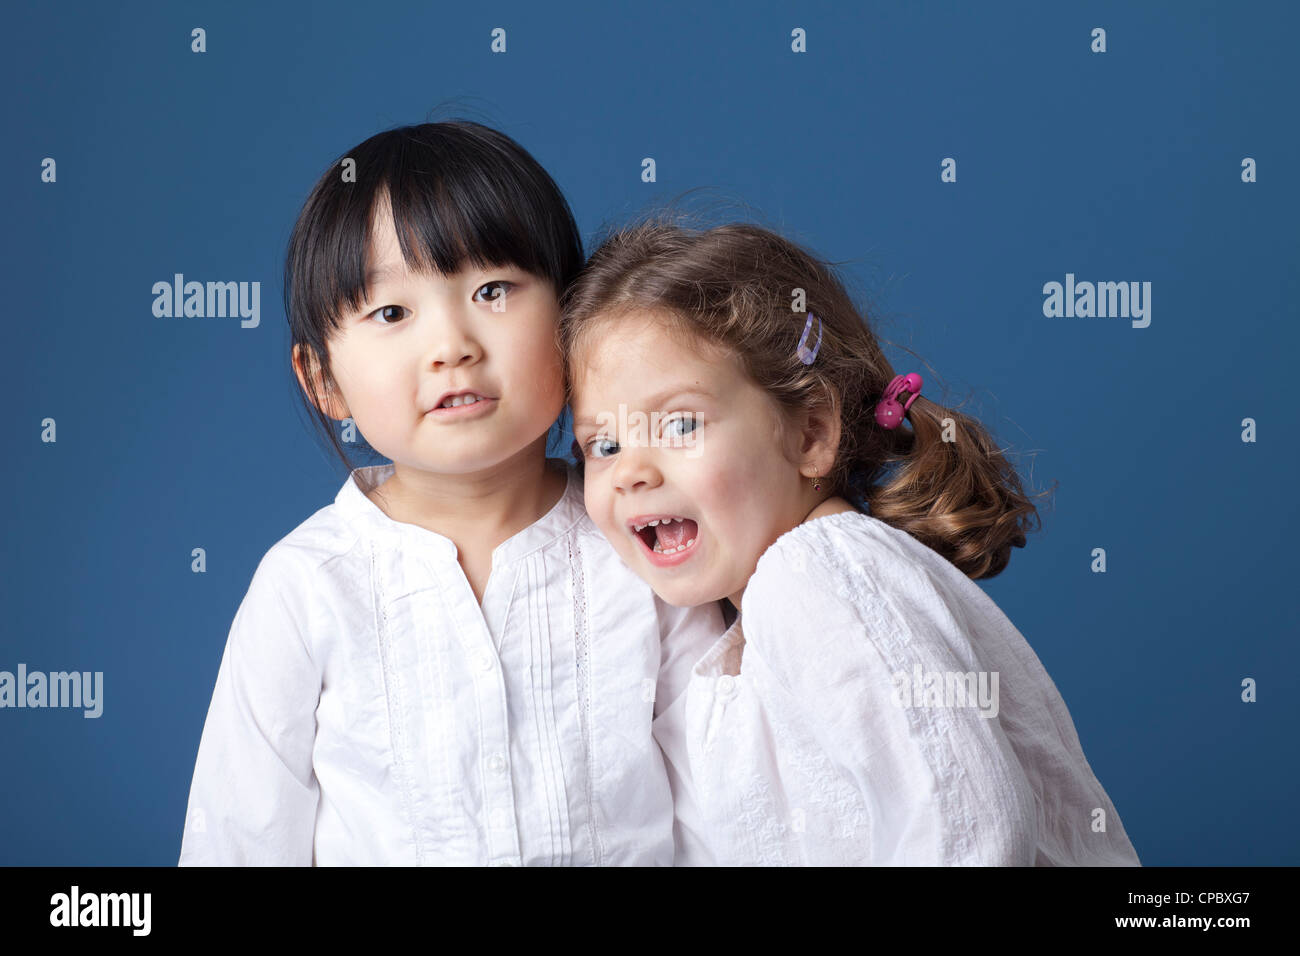 Two little girls shot in the studio against a blue background. - Stock Image